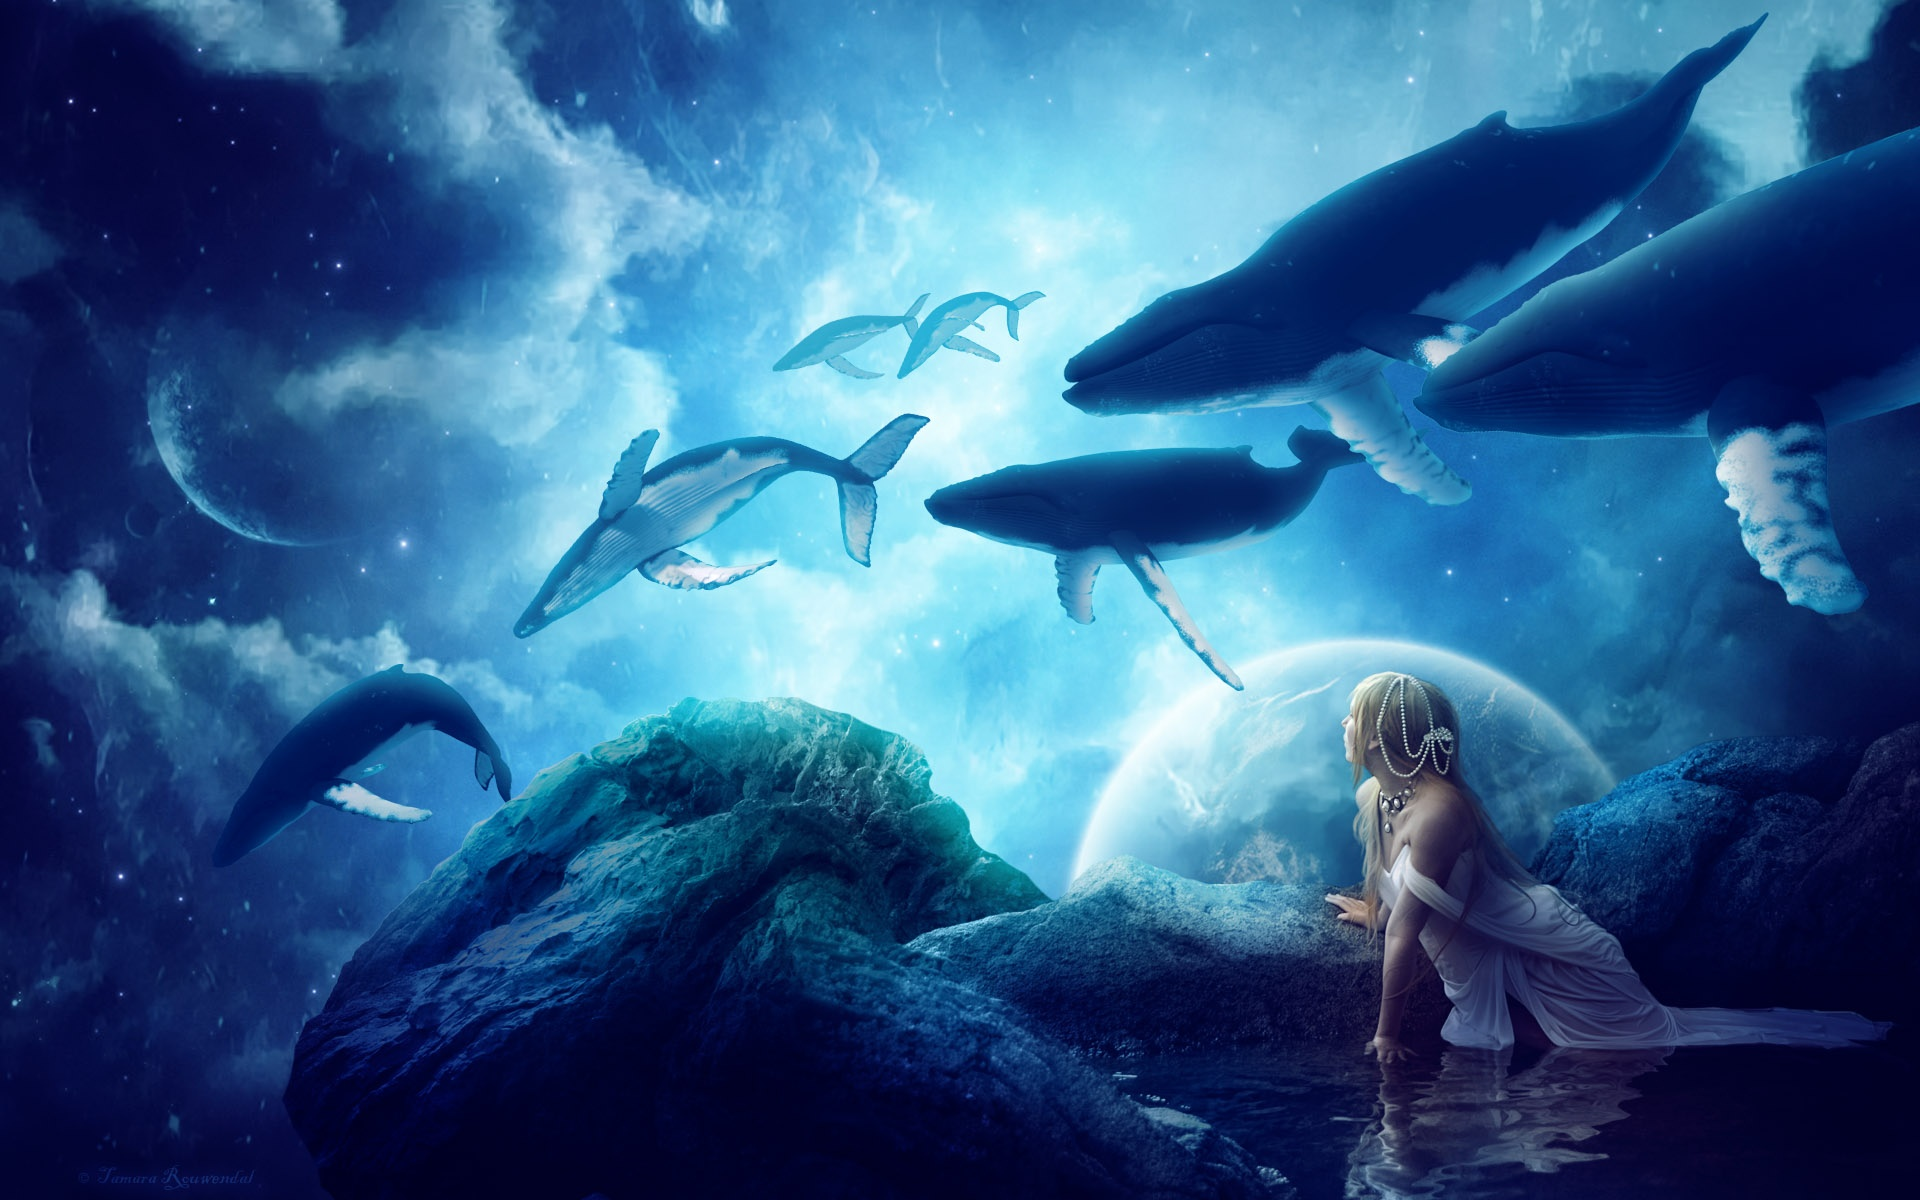 Whales Dream Wallpapers HD Wallpapers 1920x1200